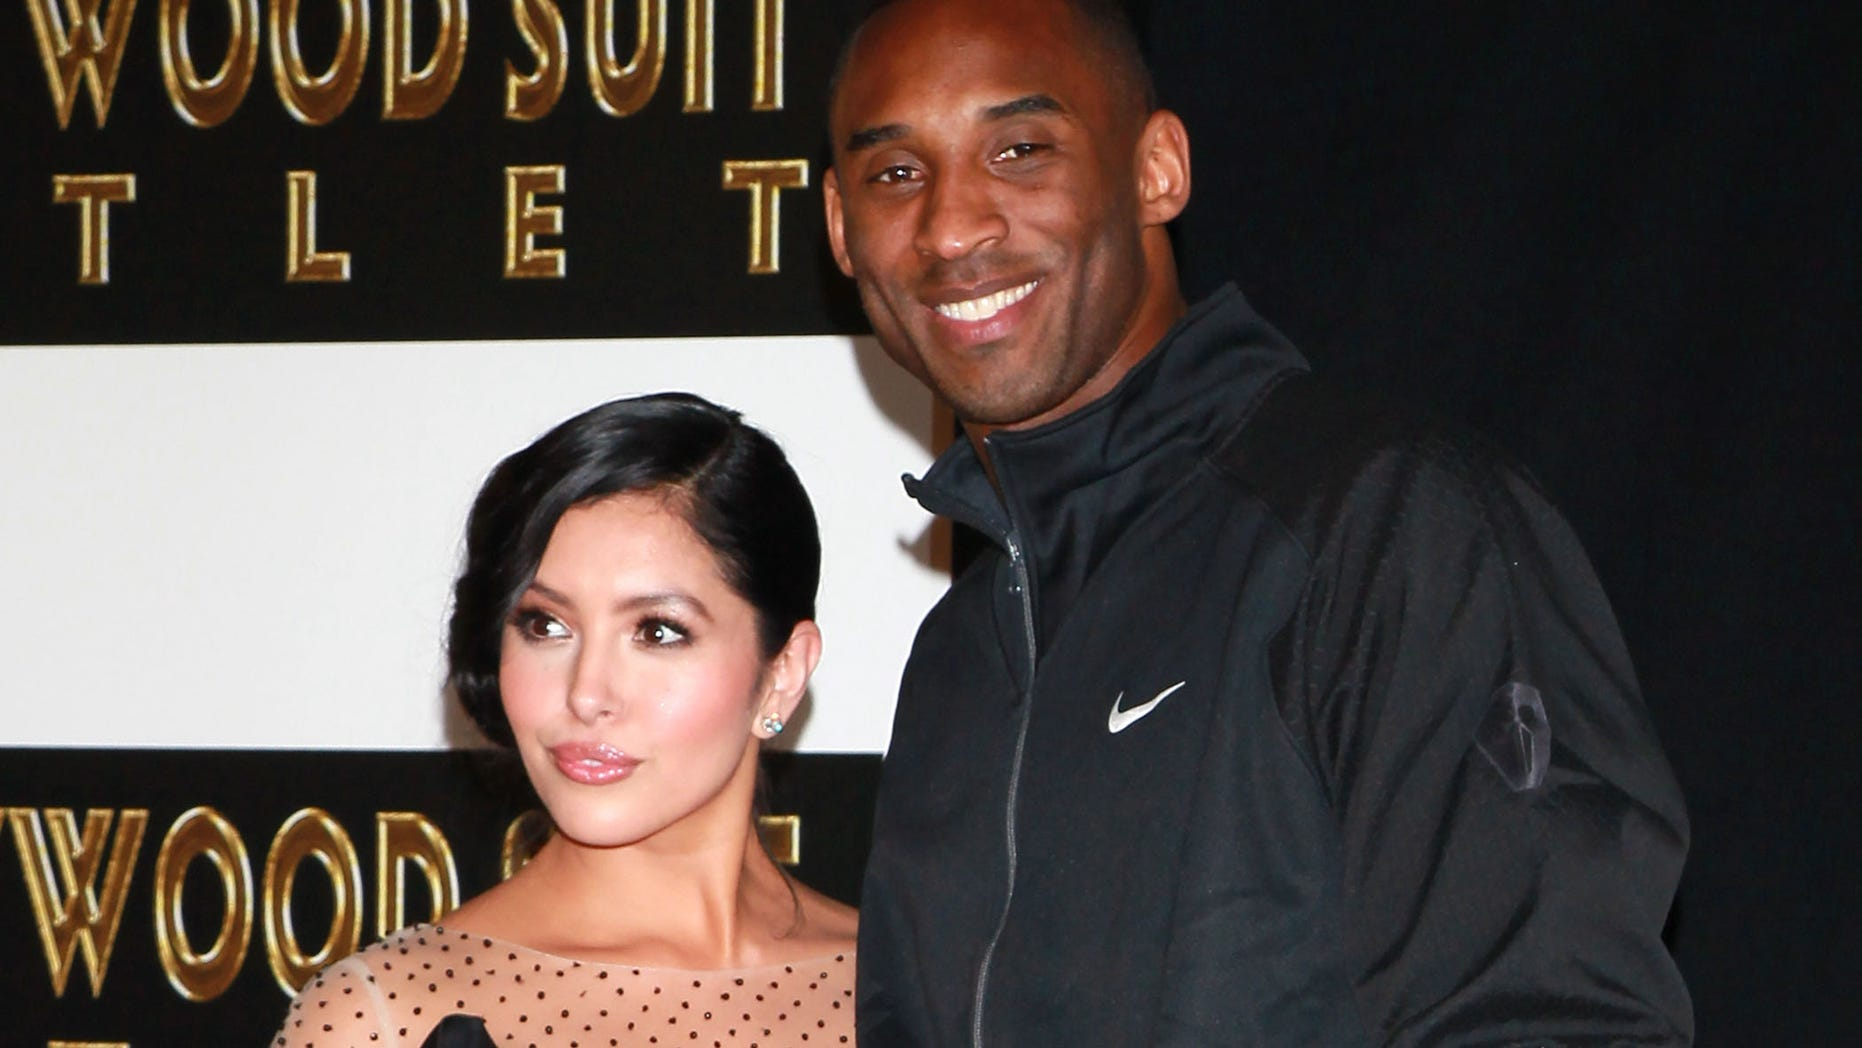 HOLLYWOOD, CA - FEBRUARY 19:  NBA player Kobe Bryant (R) and wife Vanessa Bryant attend his hand and footprint ceremony at Grauman's Chinese Theater on February 19, 2011 in Hollywood, California.  (Photo by David Livingston/Getty Images)